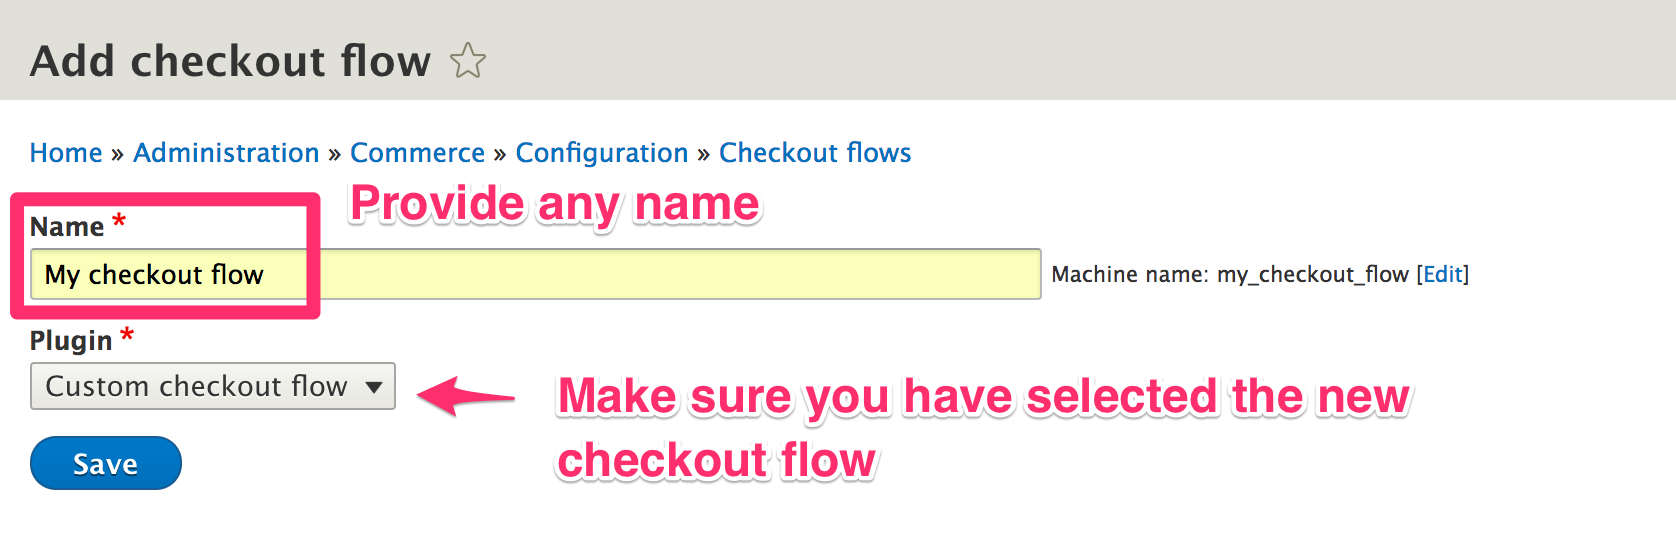 Custom checkout flow 1